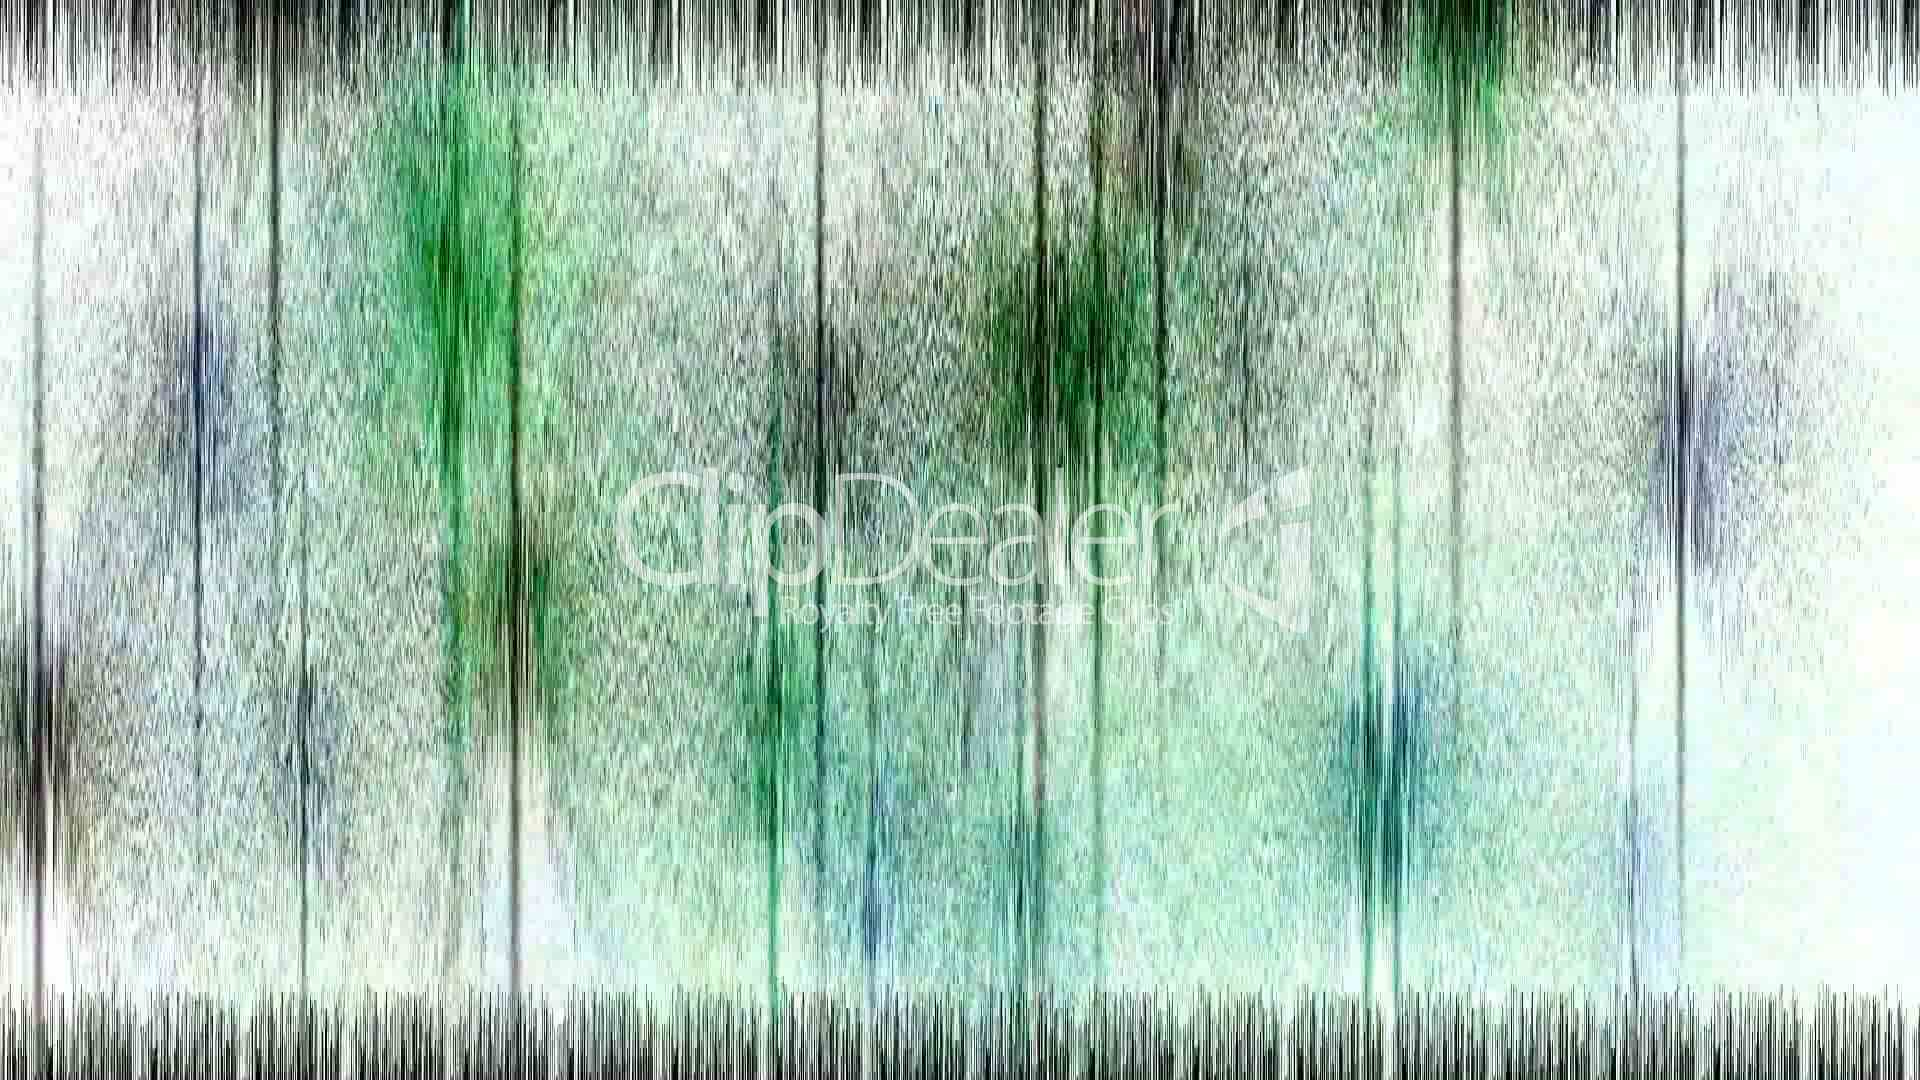 crayon sketch background plant leaves grass frosted glass